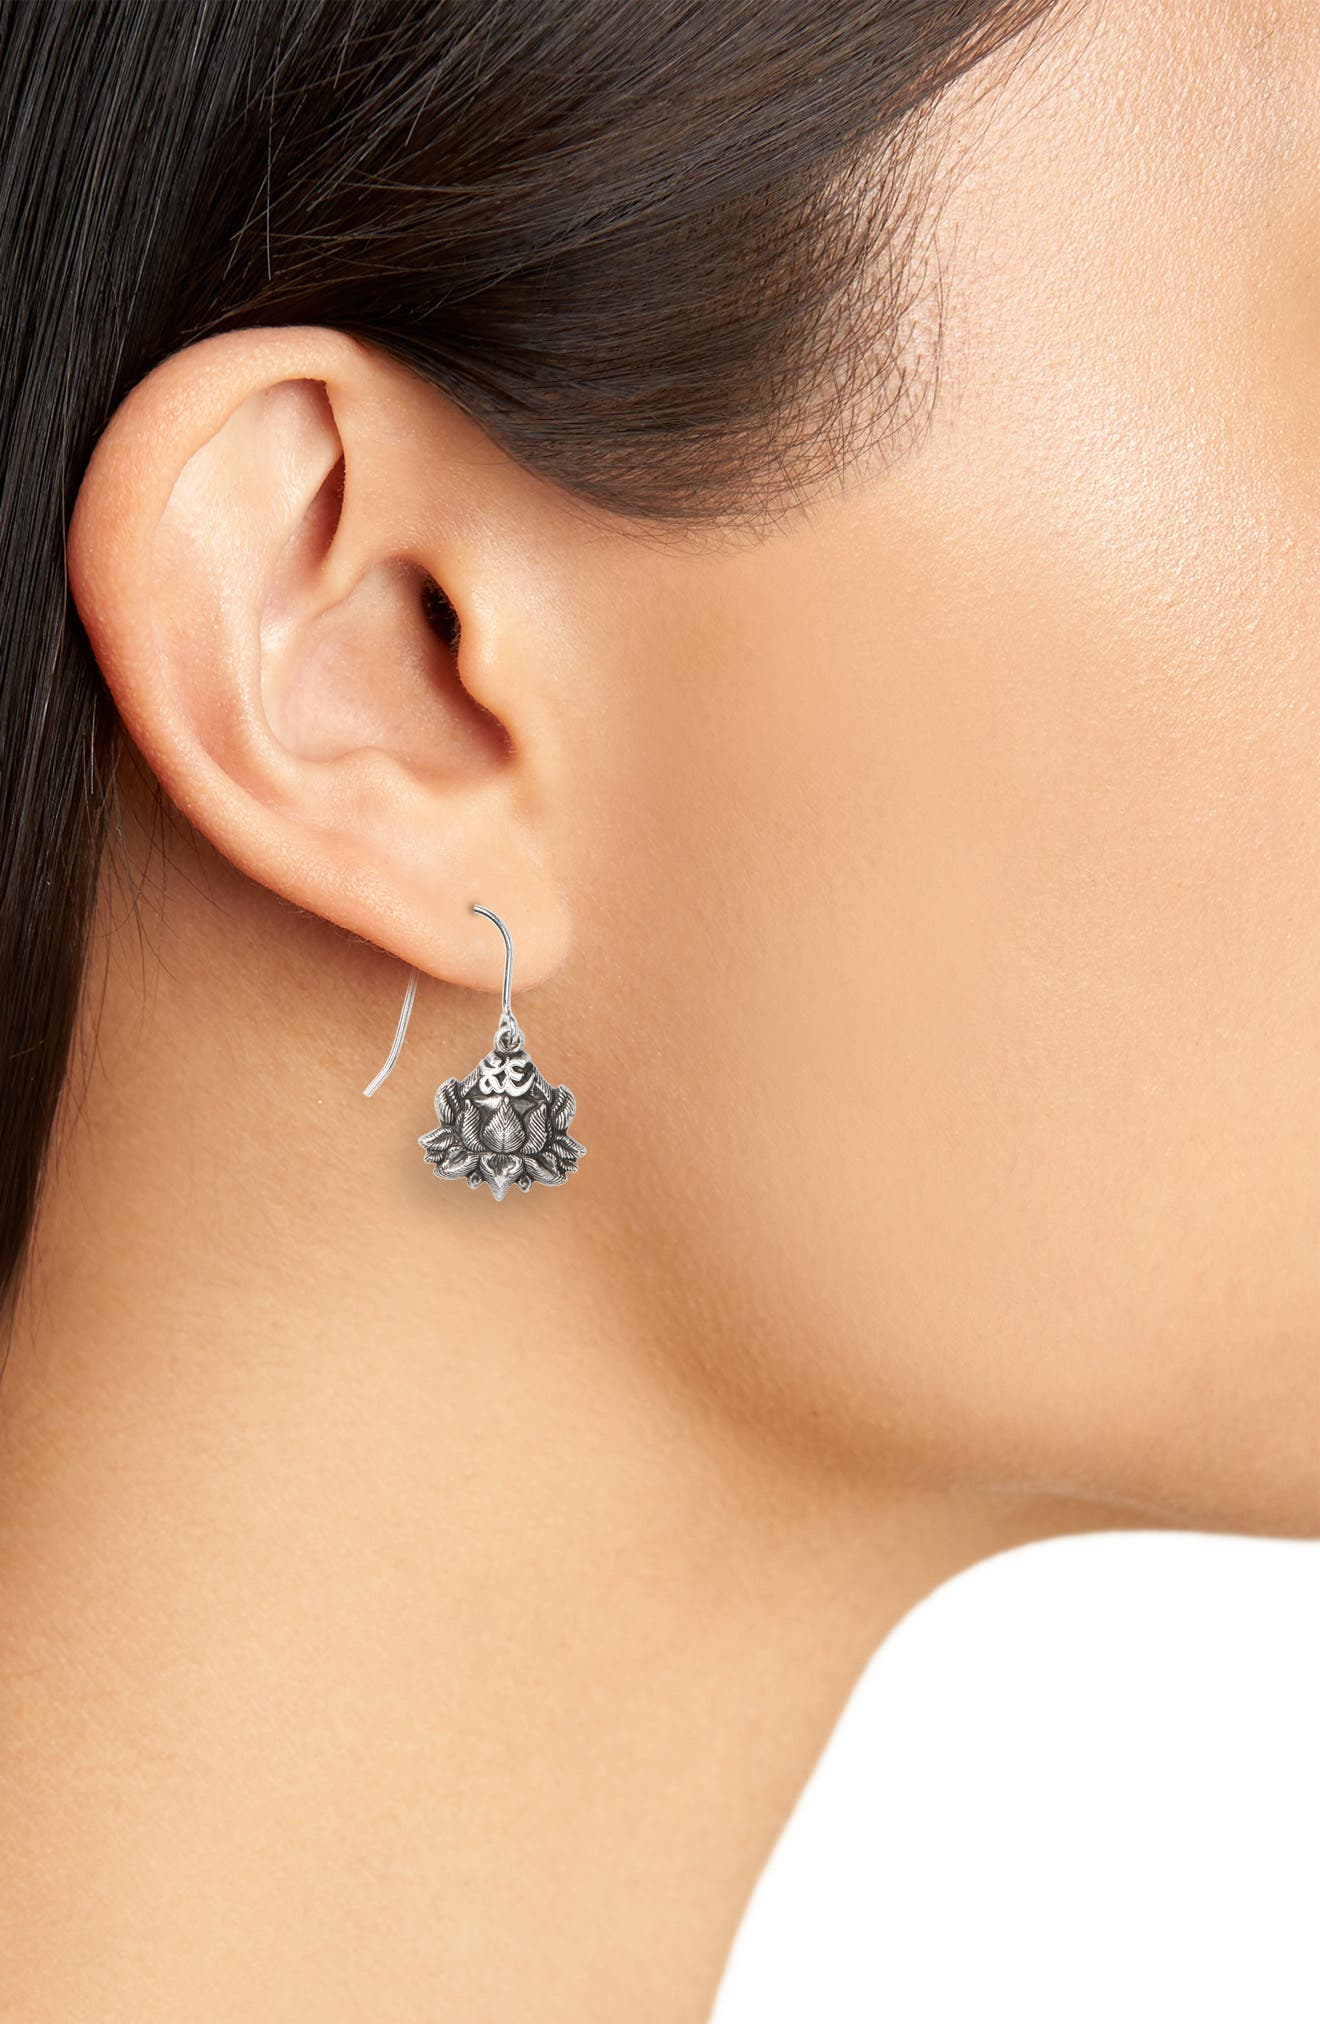 Lotus Peace Petals Drop Earrings,                             Alternate thumbnail 2, color,                             SILVER